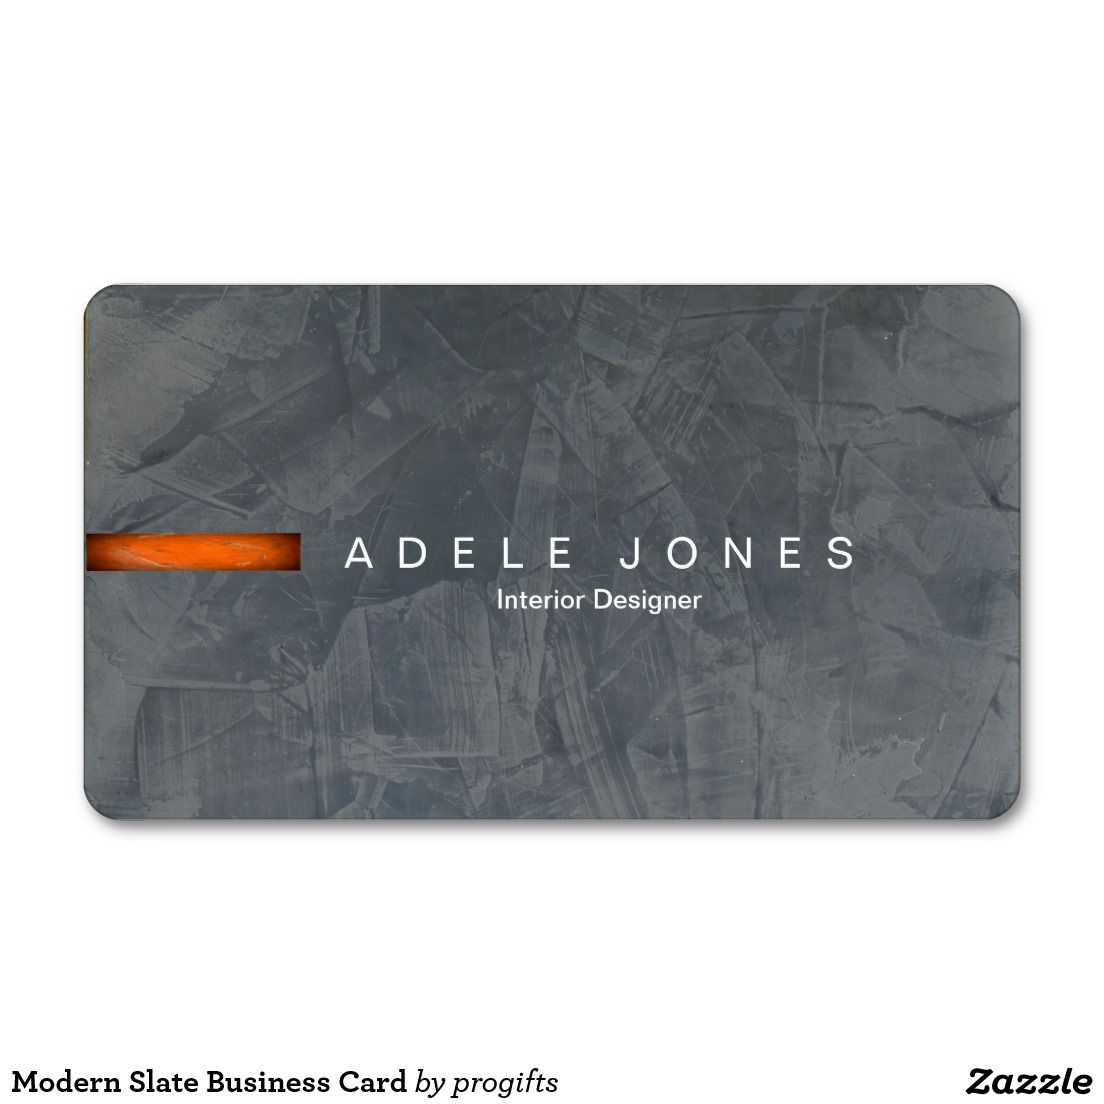 Modern Slate Business Card | Business cards, Slate and Business